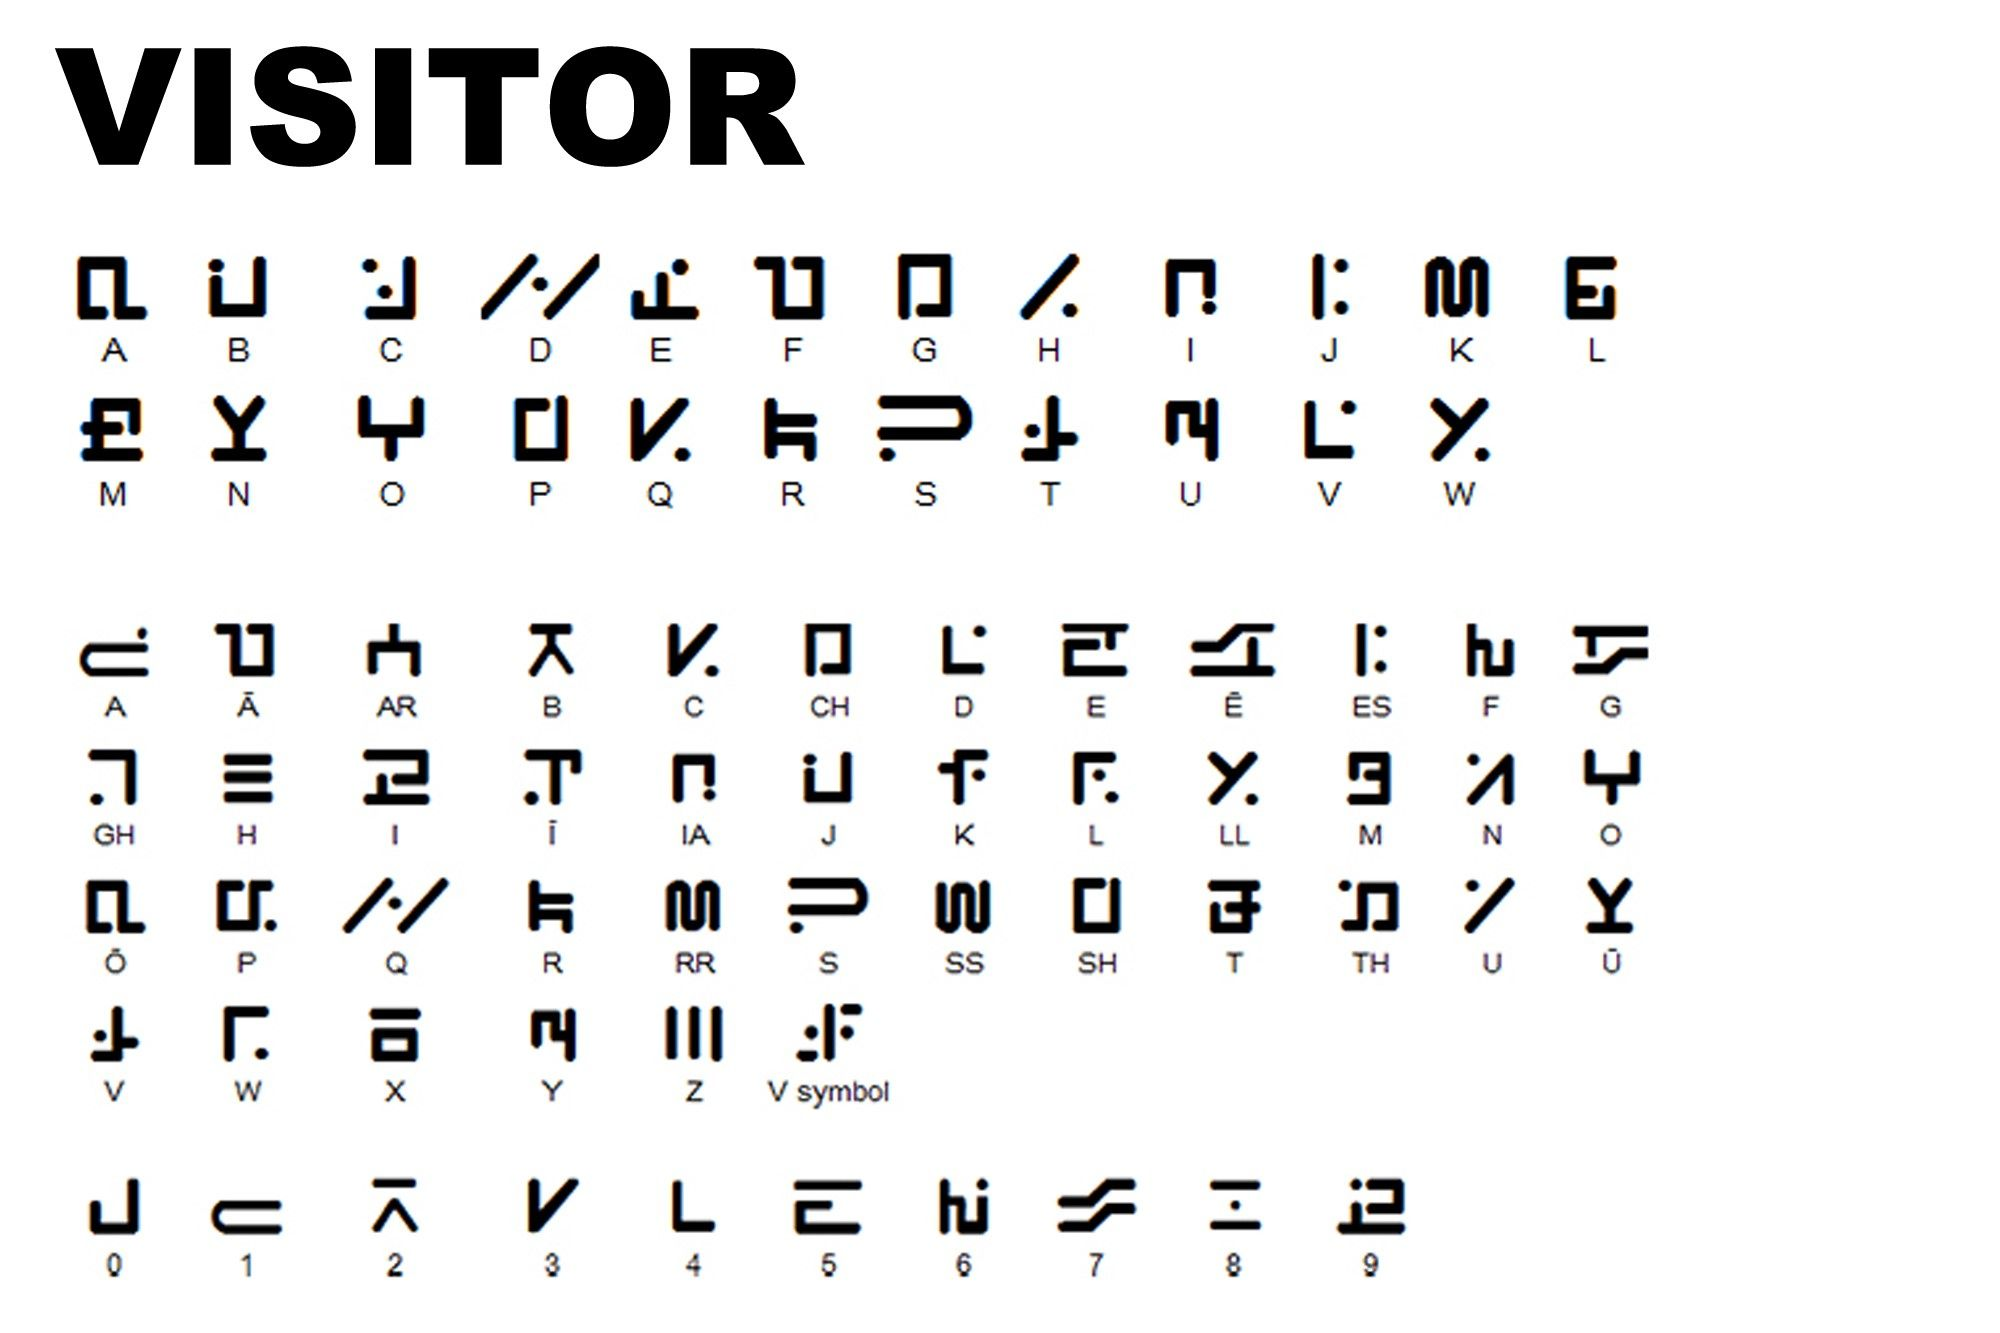 Alphabets 1984 Et 2009 The Visitor Alphabet Appears In The 1983